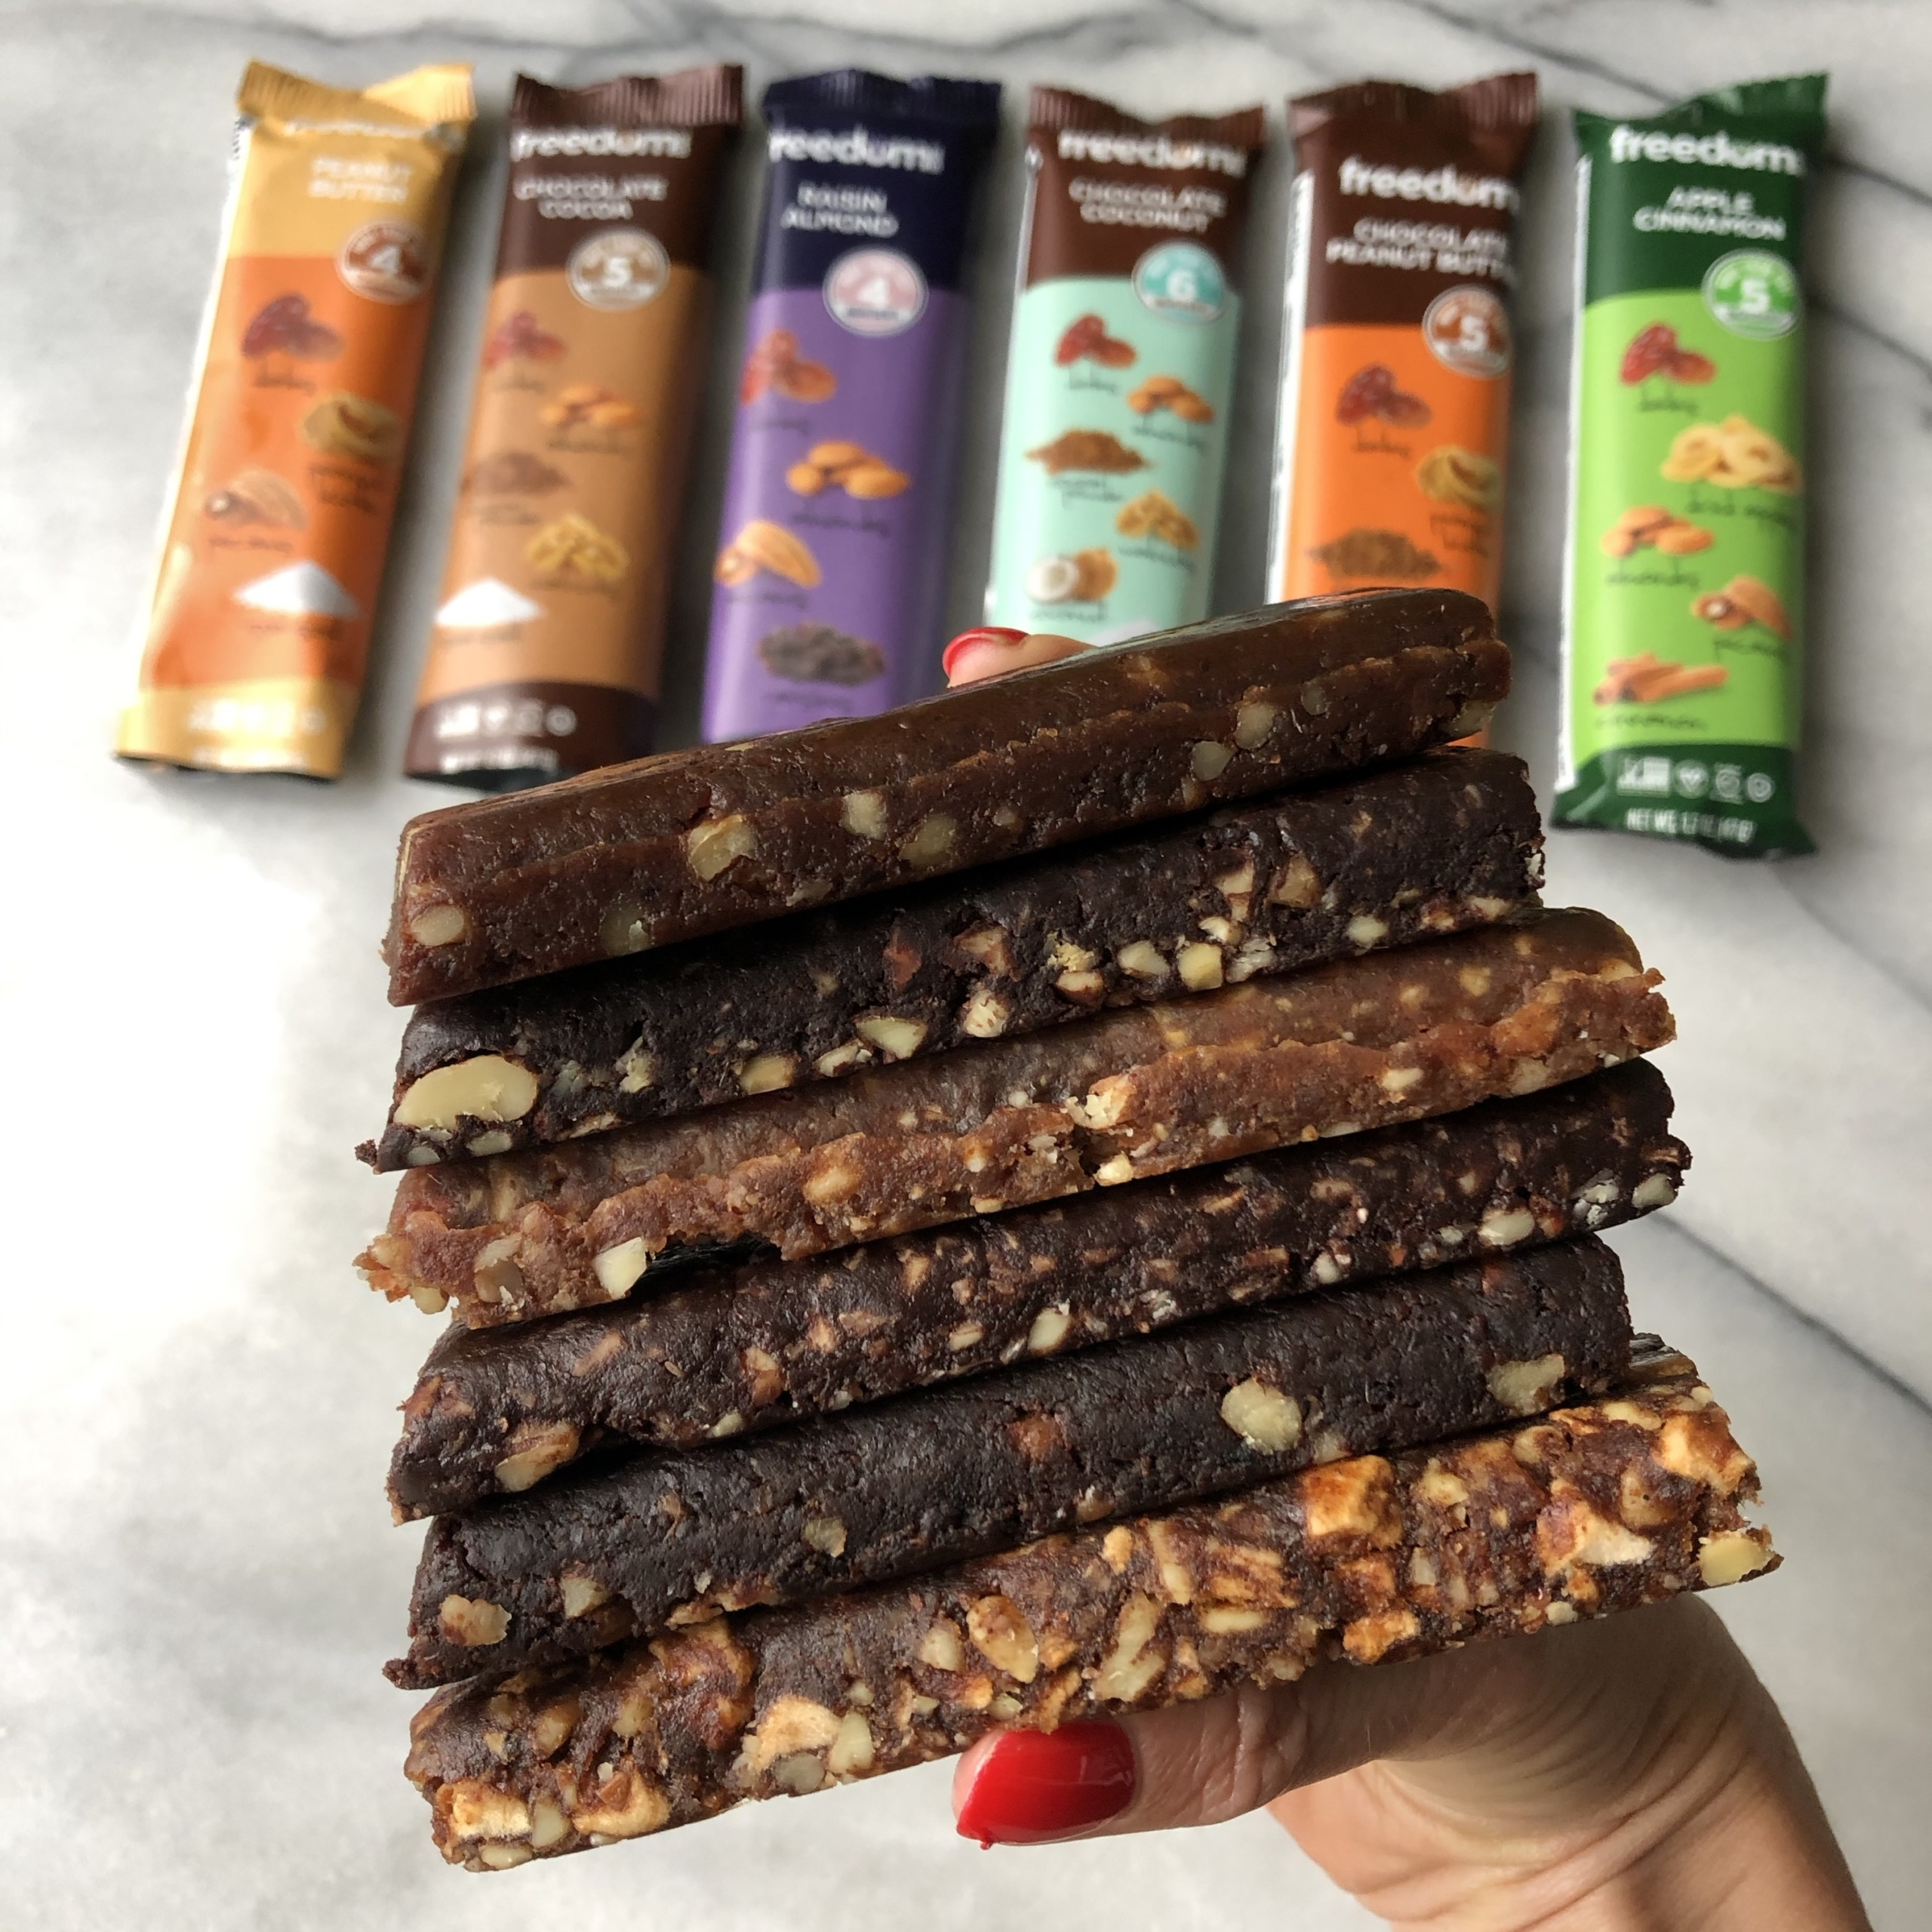 Stack of gluten-free bars by Freedom Bar